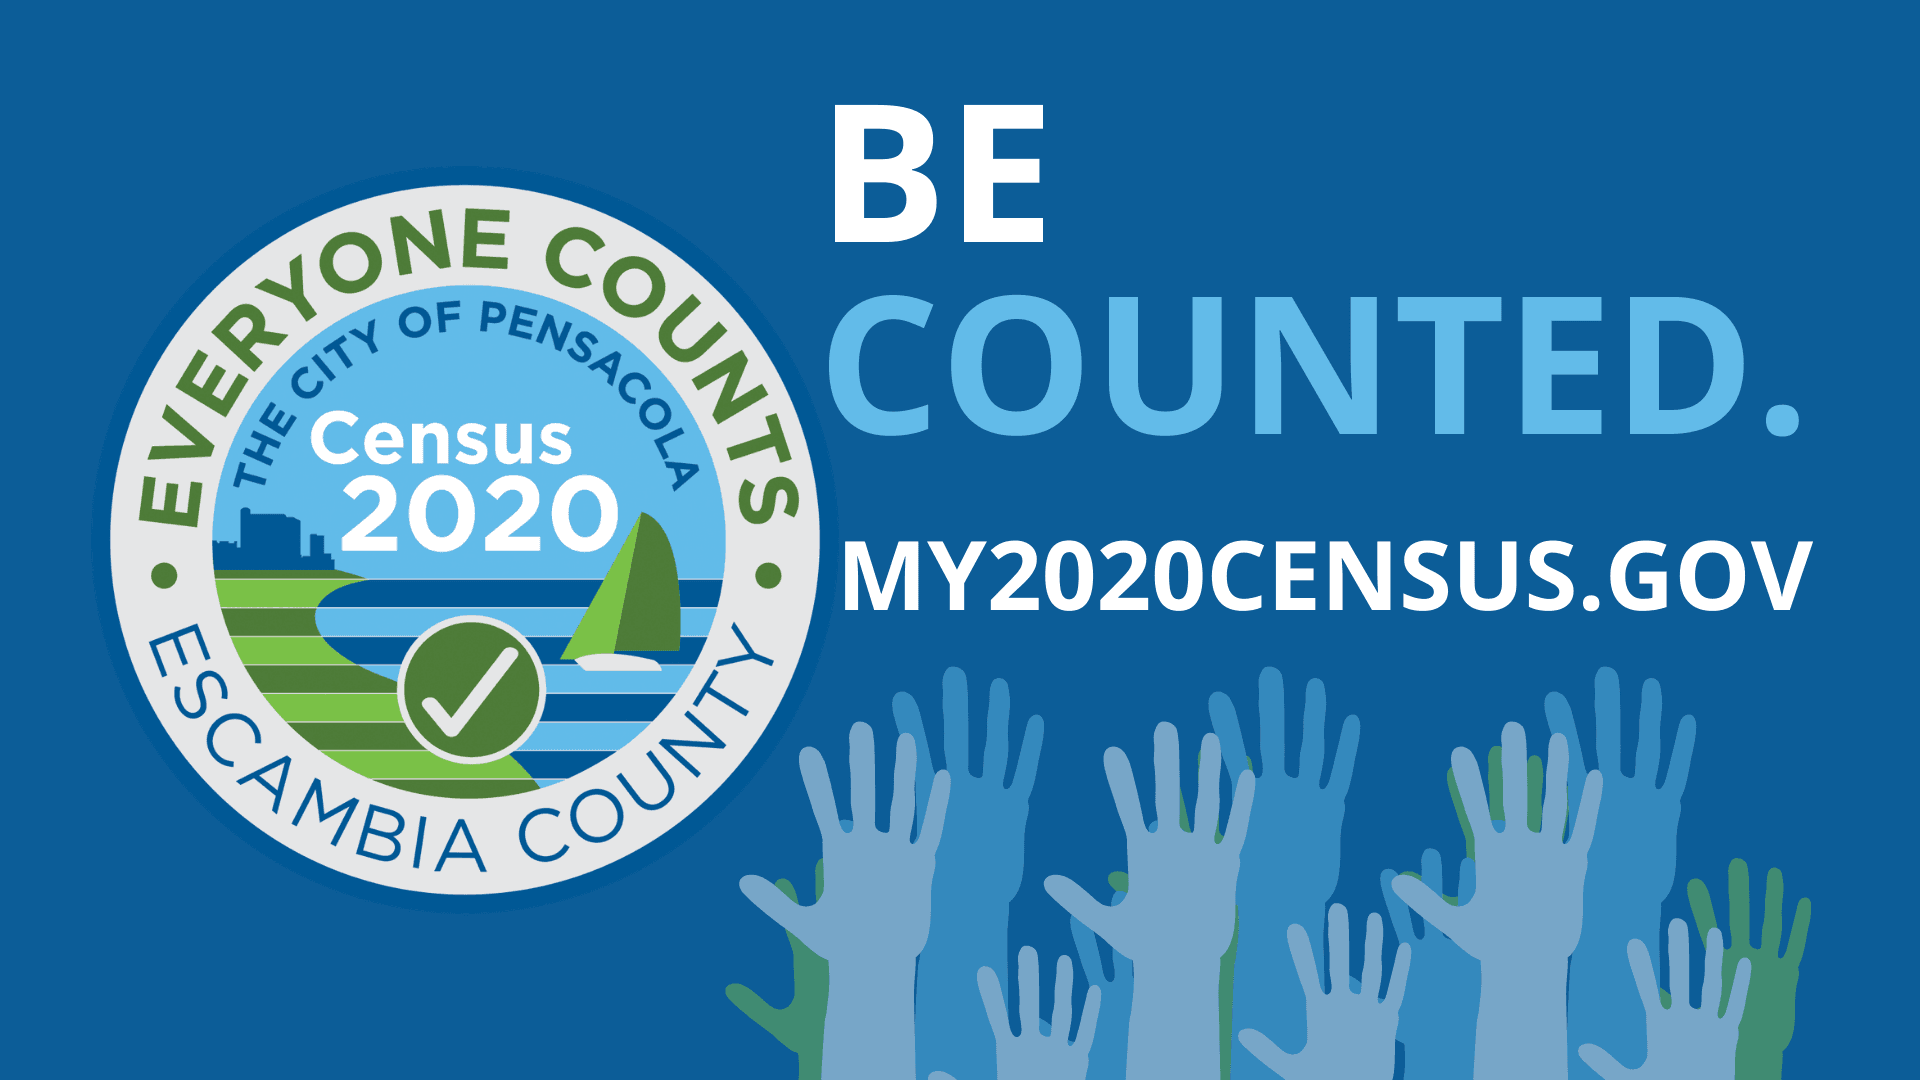 Be counted: 2020 census